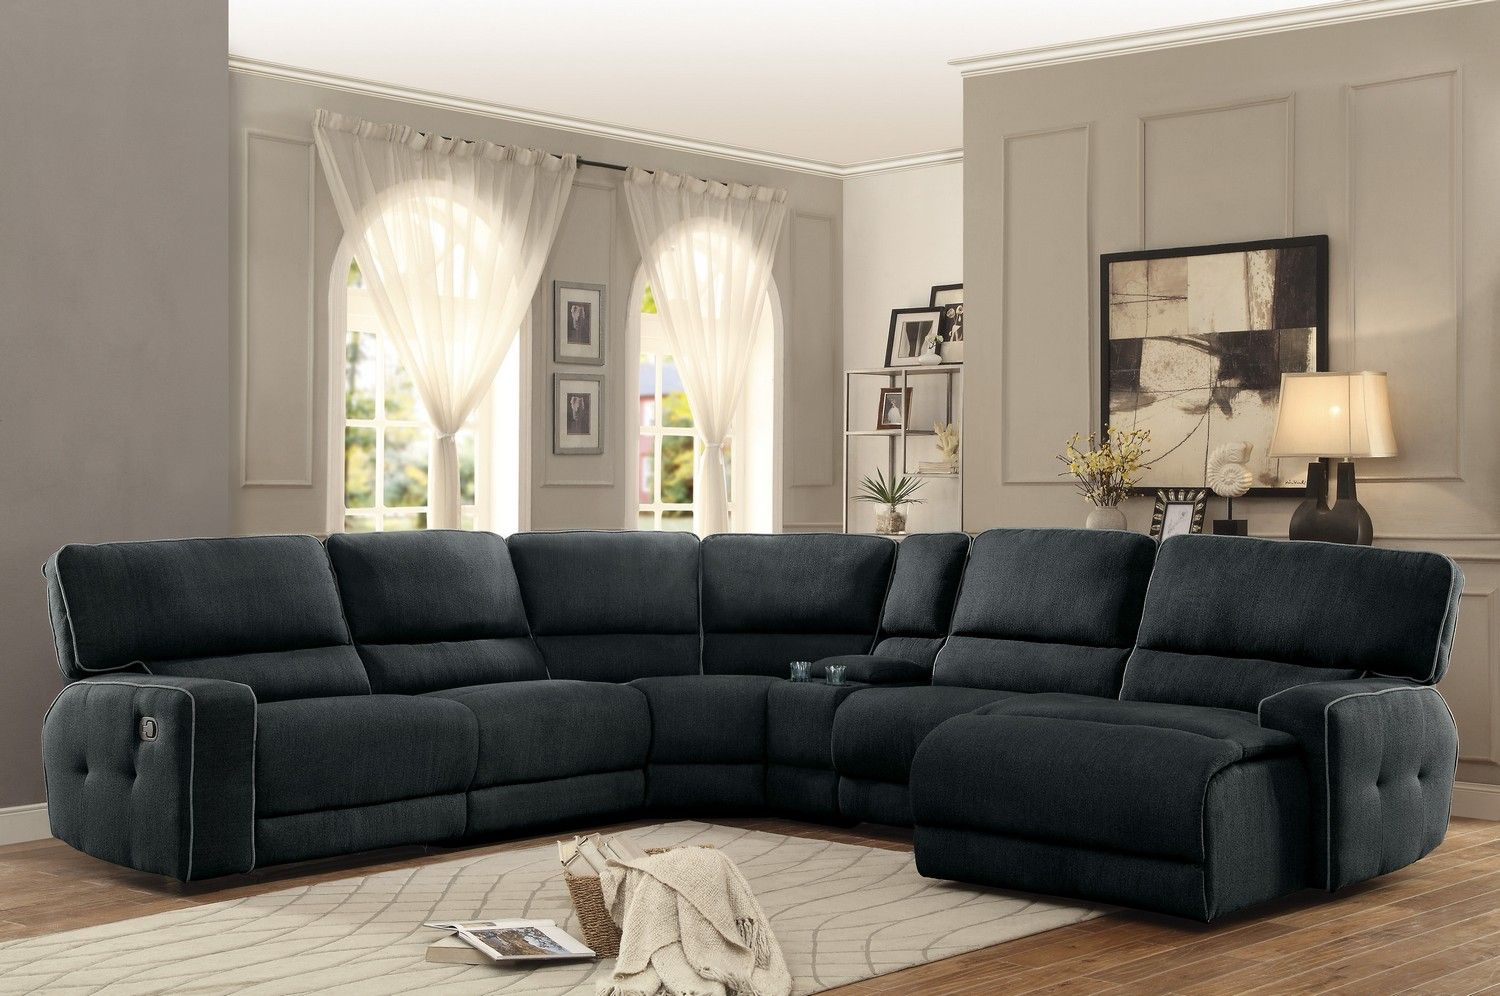 sofas gray chaise dark couch com lounge lizbarnett mayfair sofa grey me sectional couches with